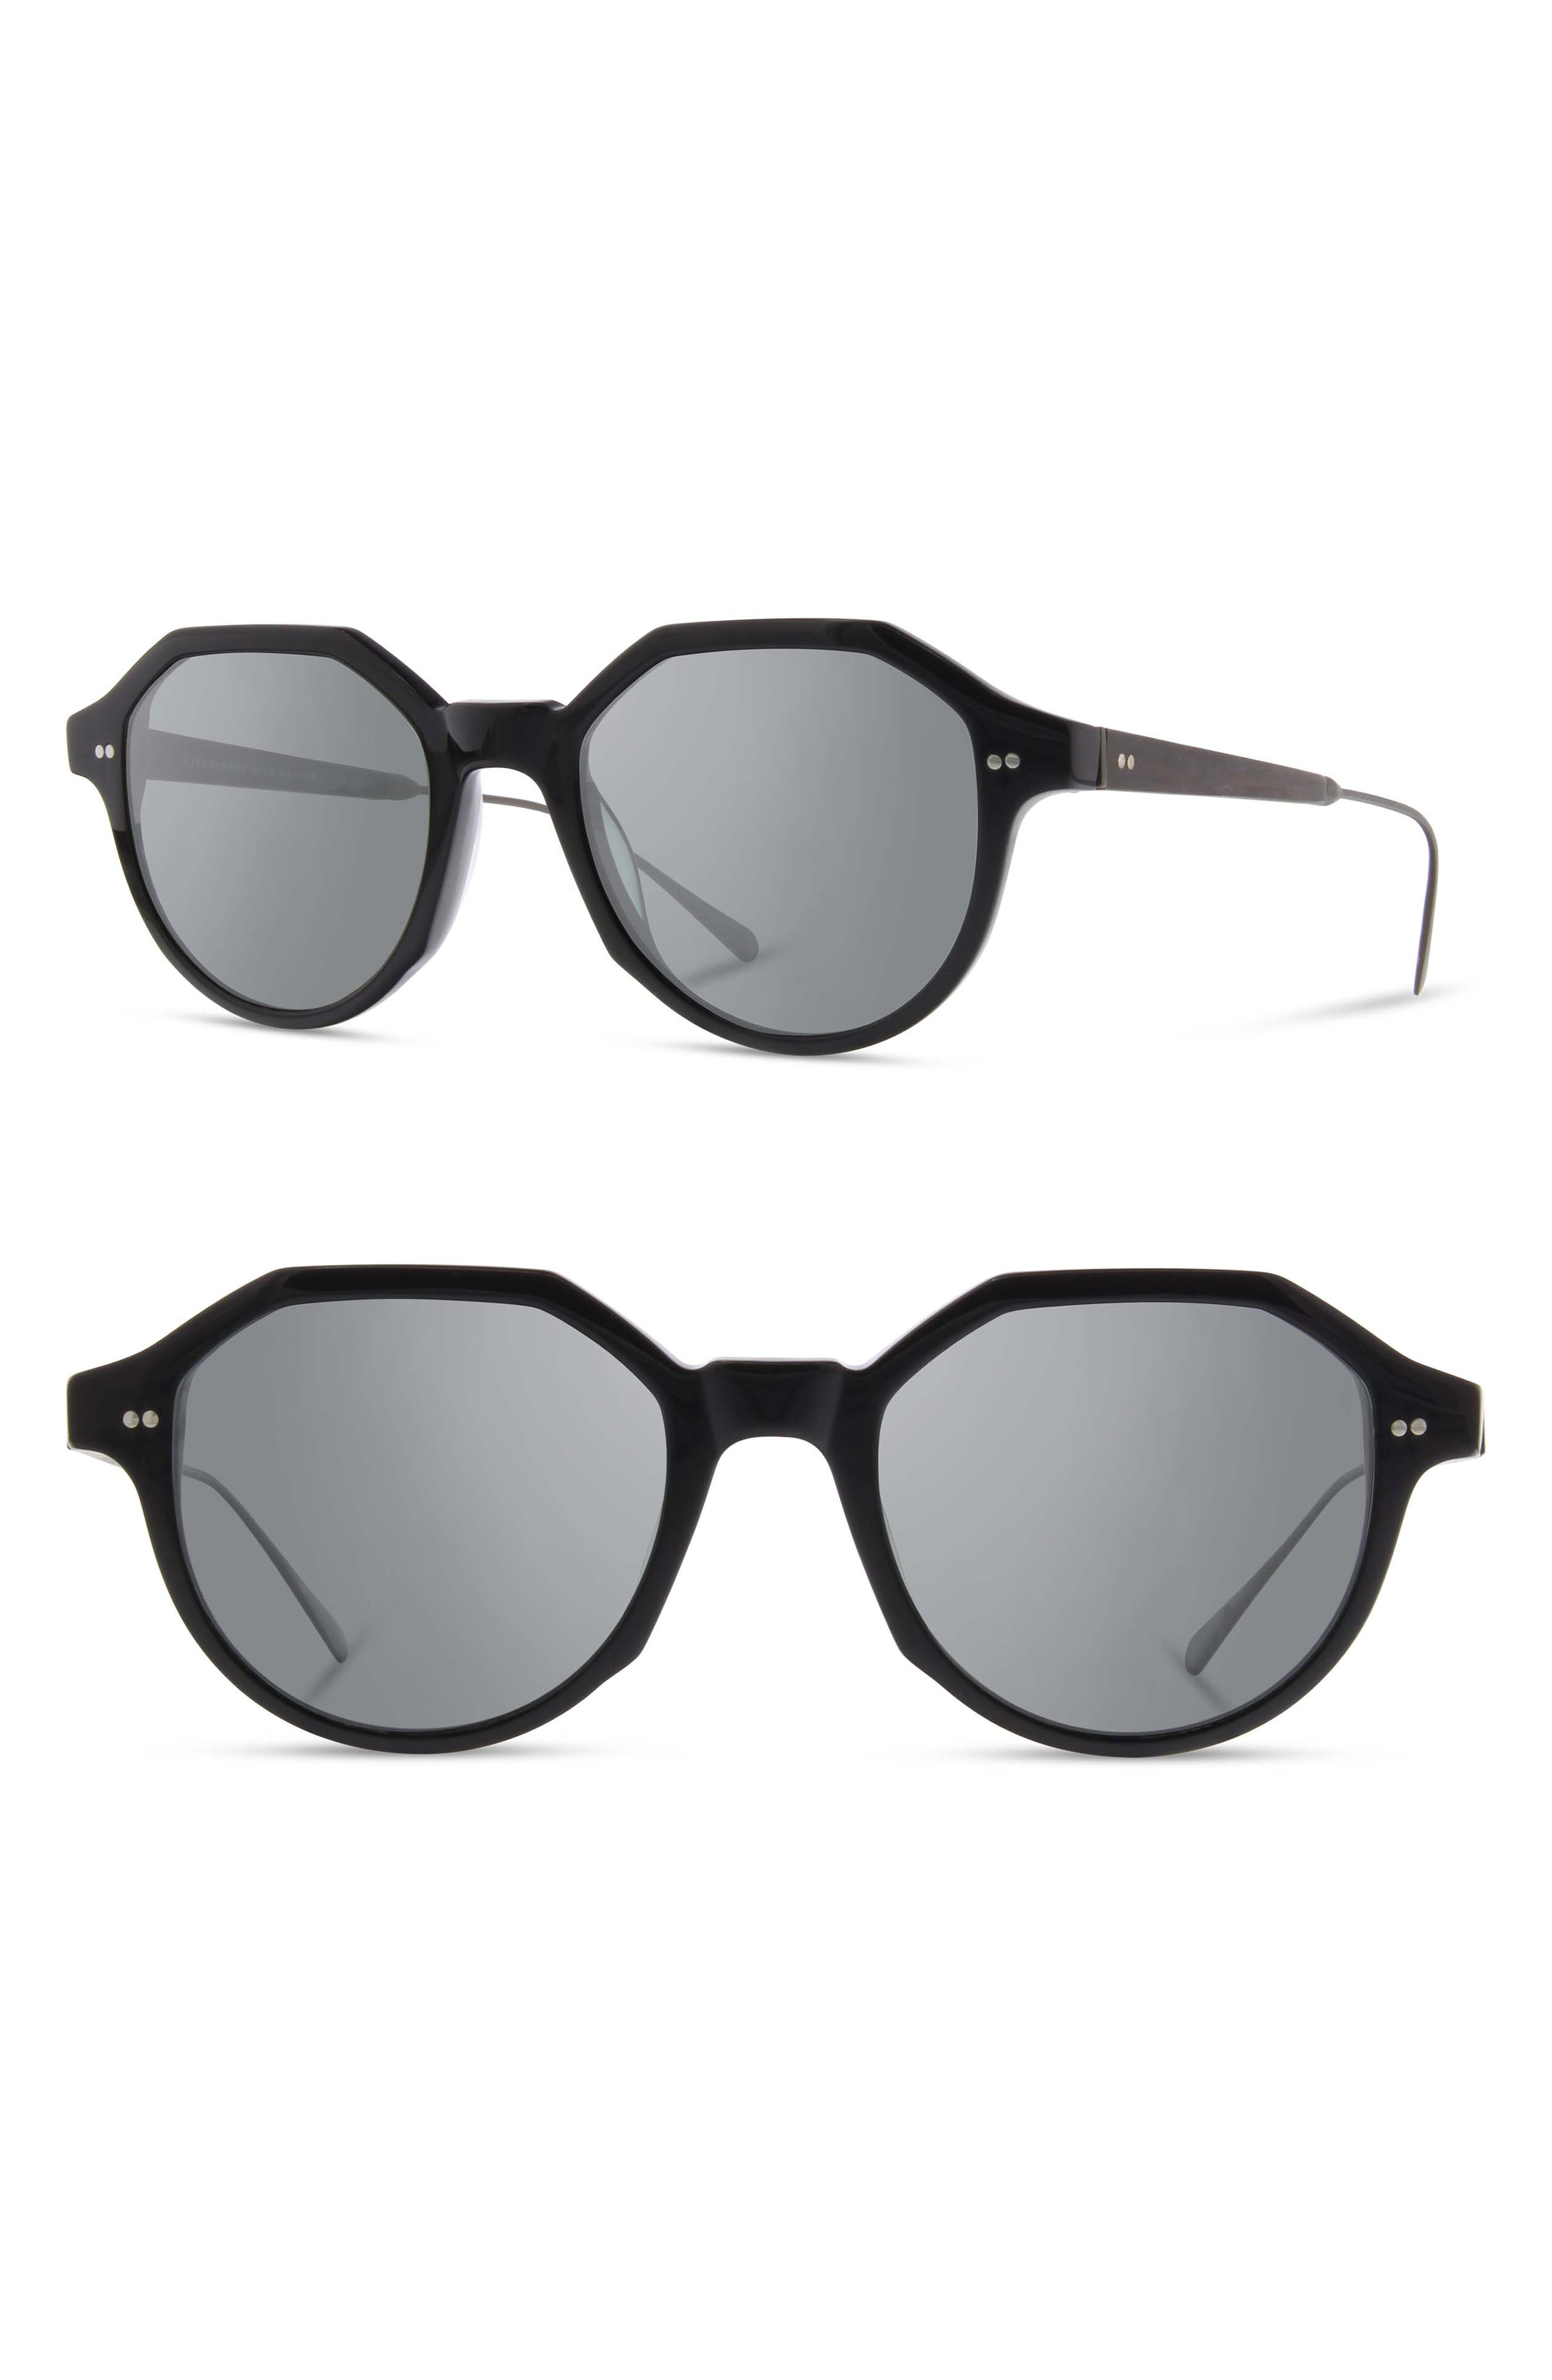 Shwood Powell 50Mm Polarized Geometric Sunglasses - Black/ Gunmetal/ Ebony/ Grey